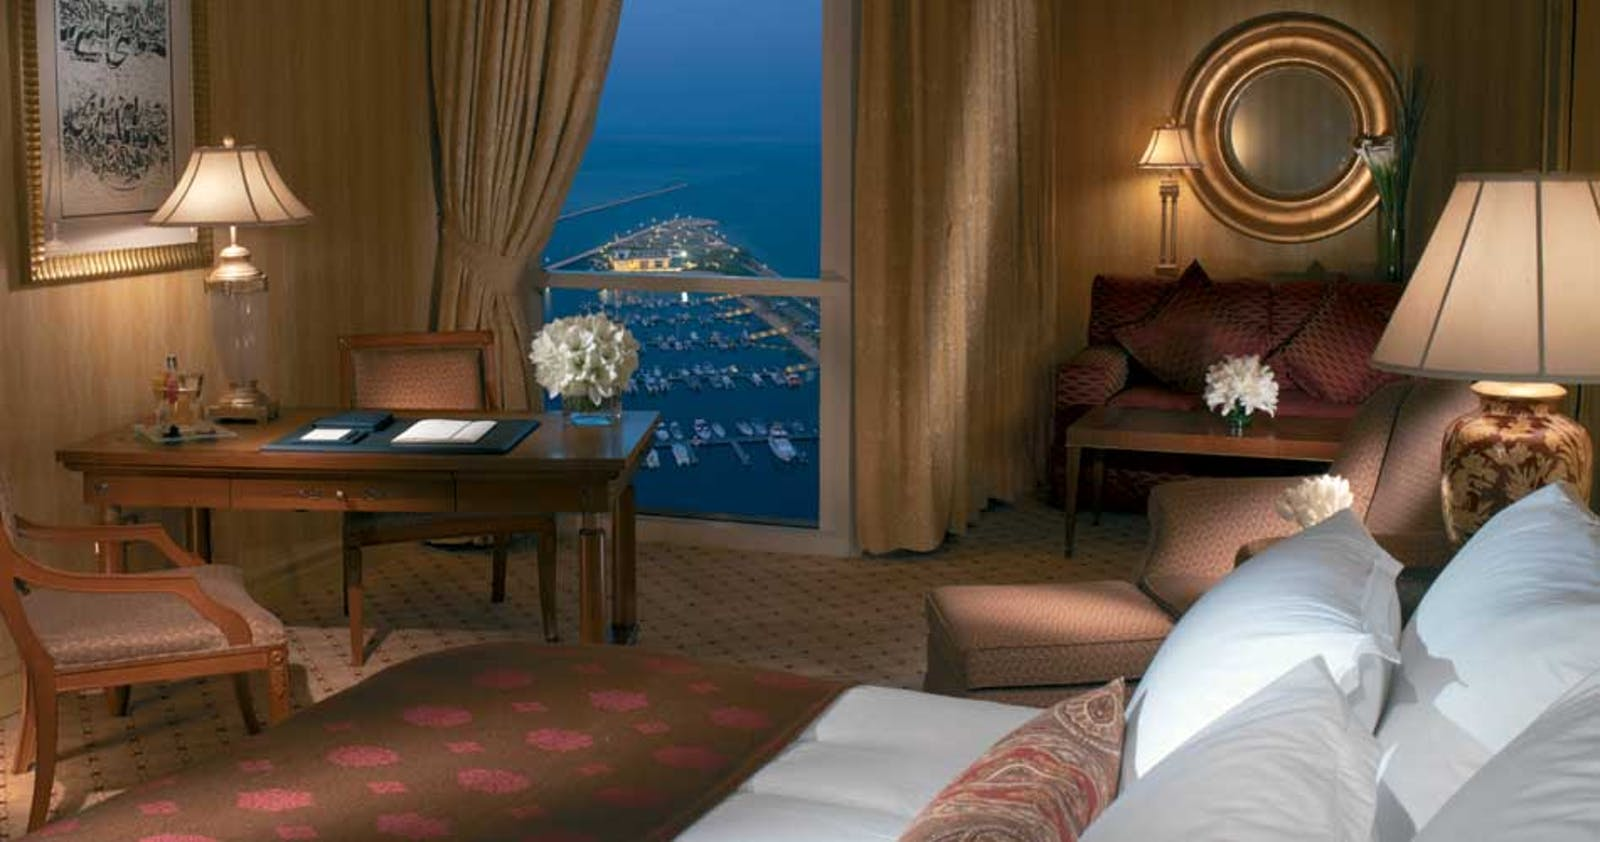 Bedroom at The Ritz-Carlton Doha